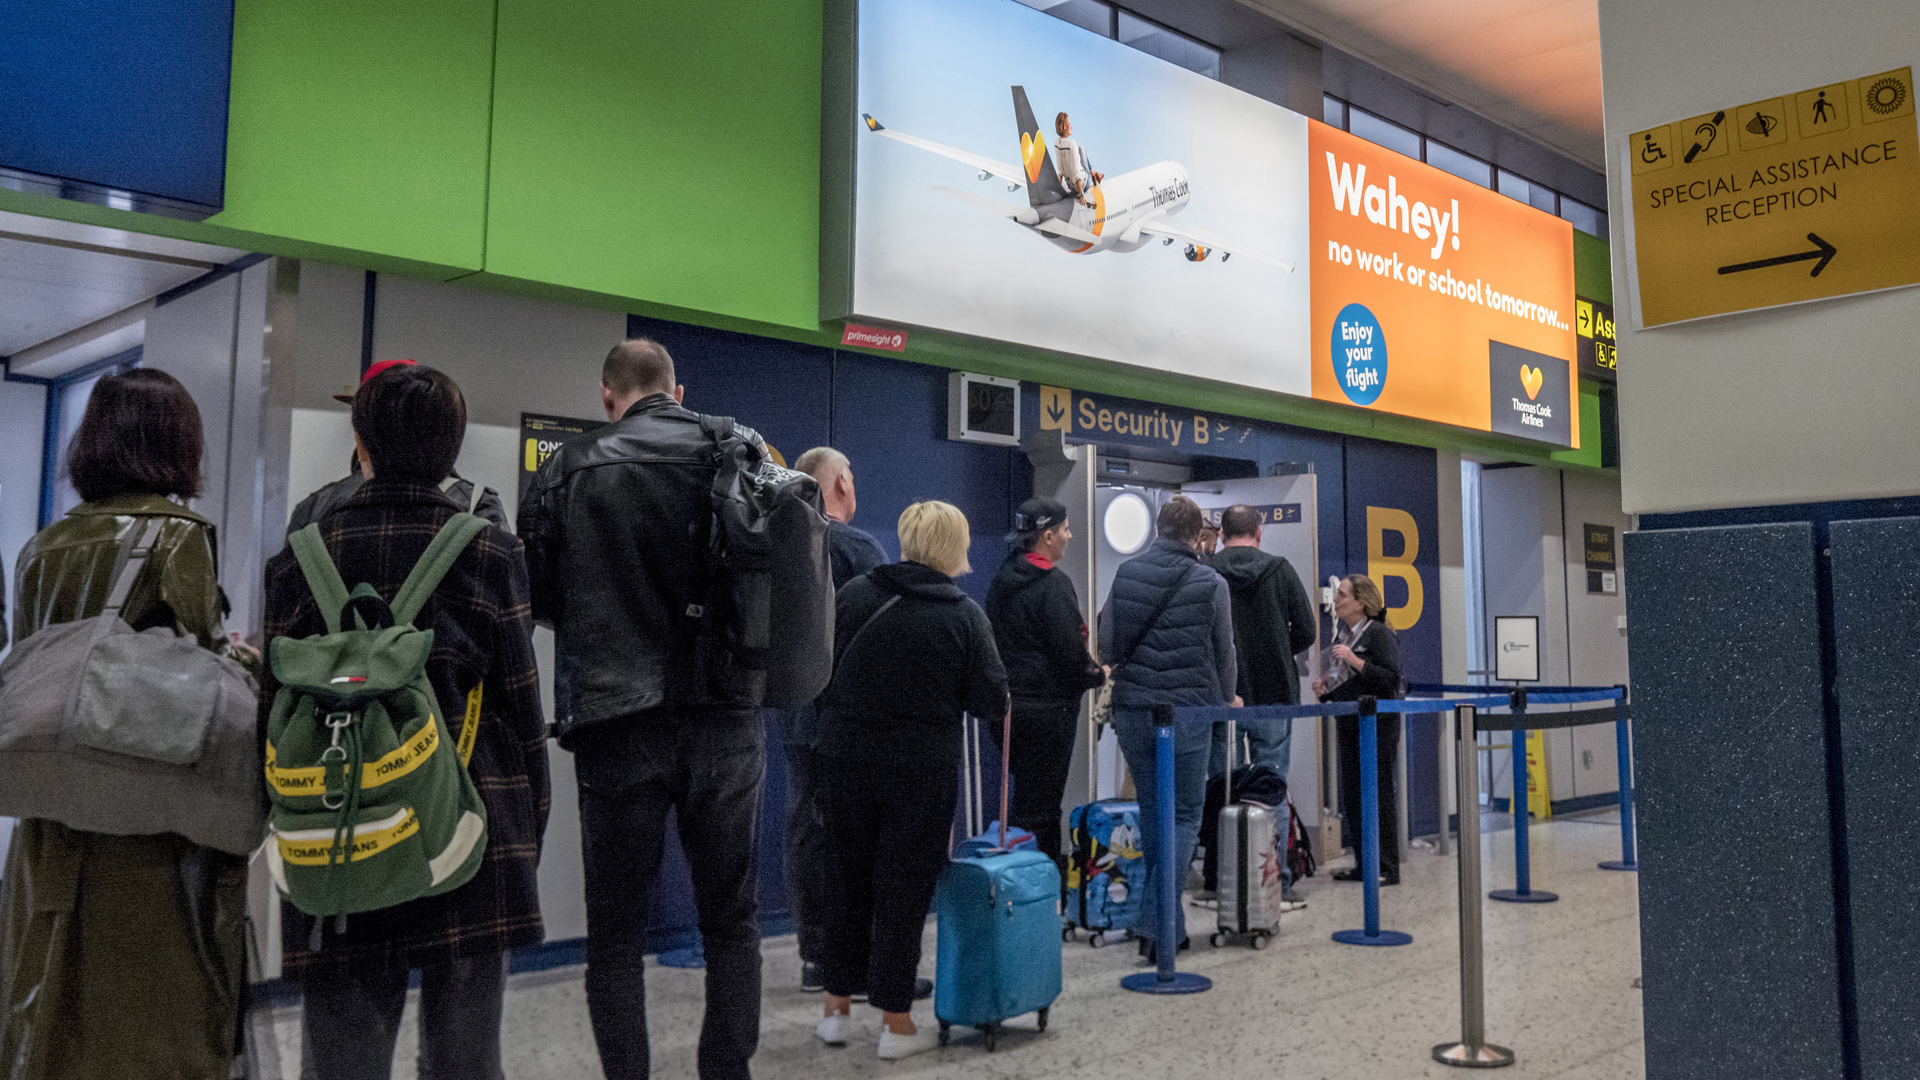 Passengers wait to go through to the Thomas Cook check-in desks at Manchester Airport on September 22, 2019 in Manchester, England. (Credit: Anthony Devlin/Getty Images)